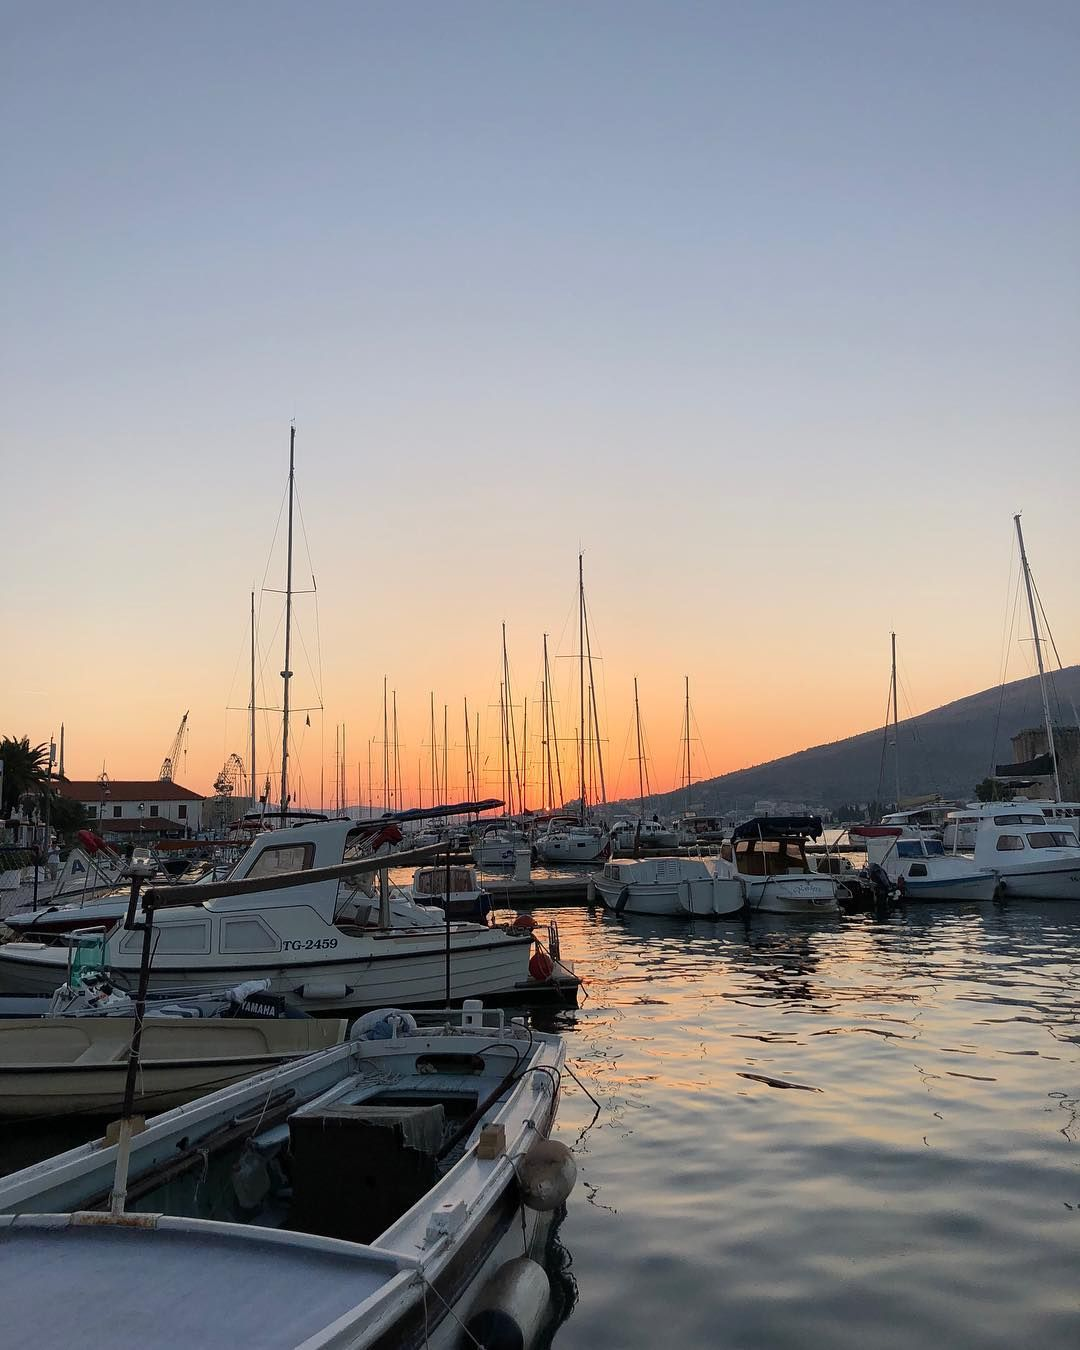 Traveling to Trogir Croatia? Check out my ultimate Trogir Travel Guide: Information on things to see and do, accommodation, transportation, food and wine. #trogir #trogircroatia #sunset #adriaticsea #colorfulsunset #sunset_pic #sunsets #sunset_vision #sunset_stream #sea #croatia #visittrogir #croatiaislands